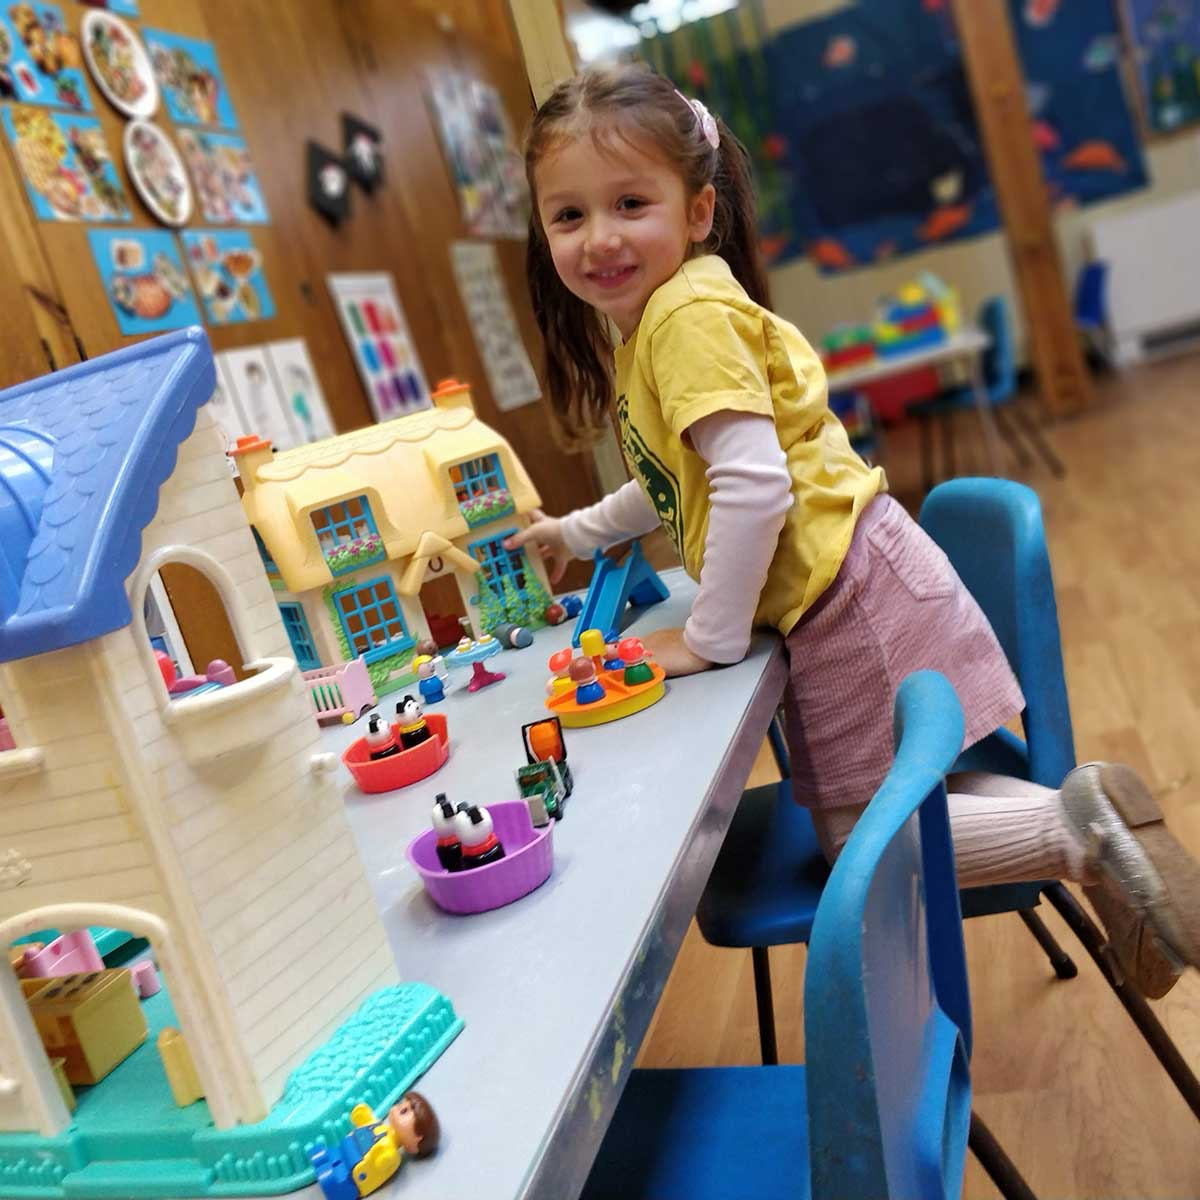 A young girl playing happily at Whiteway Pre School